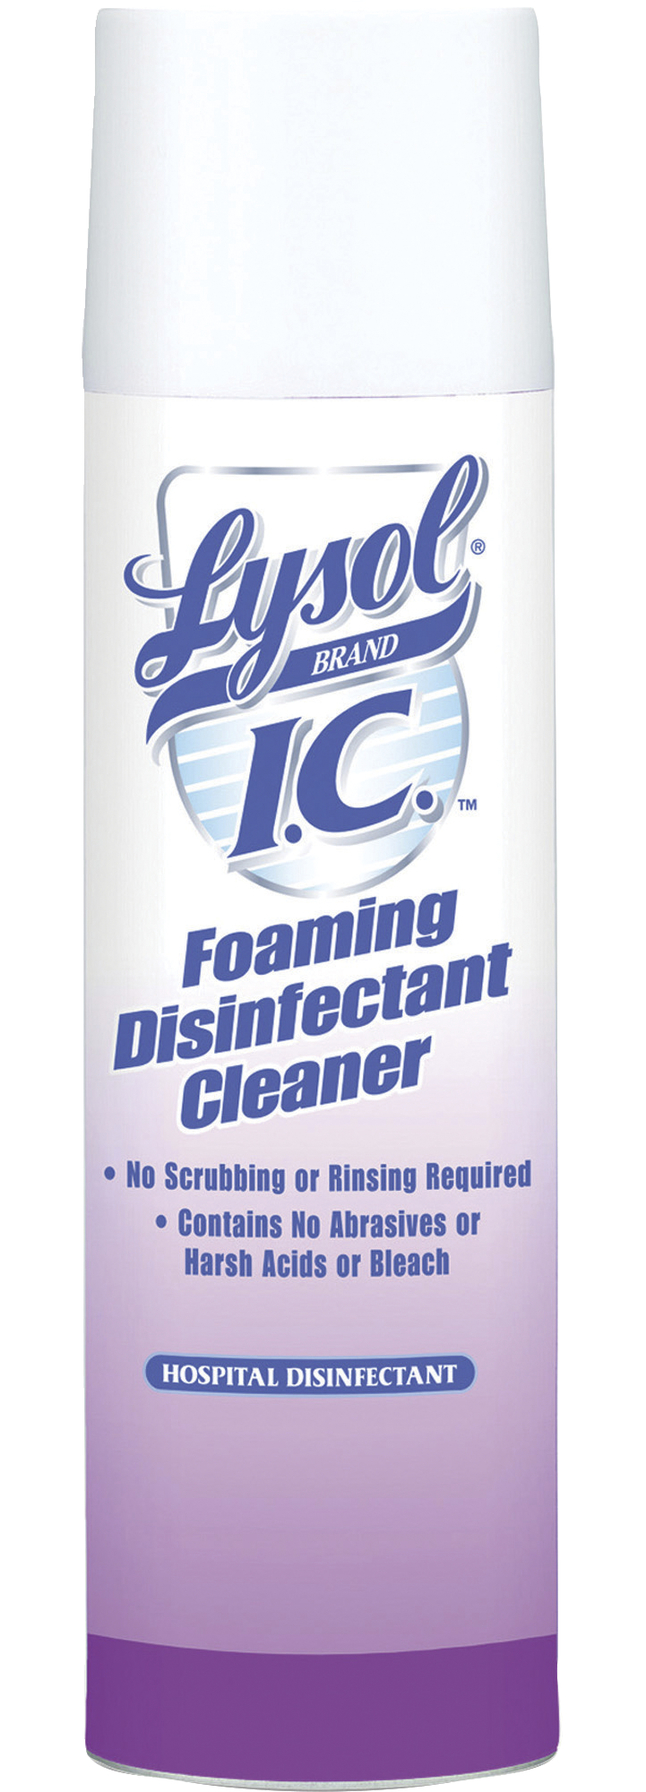 All Purpose Cleaners, Item Number 1312846